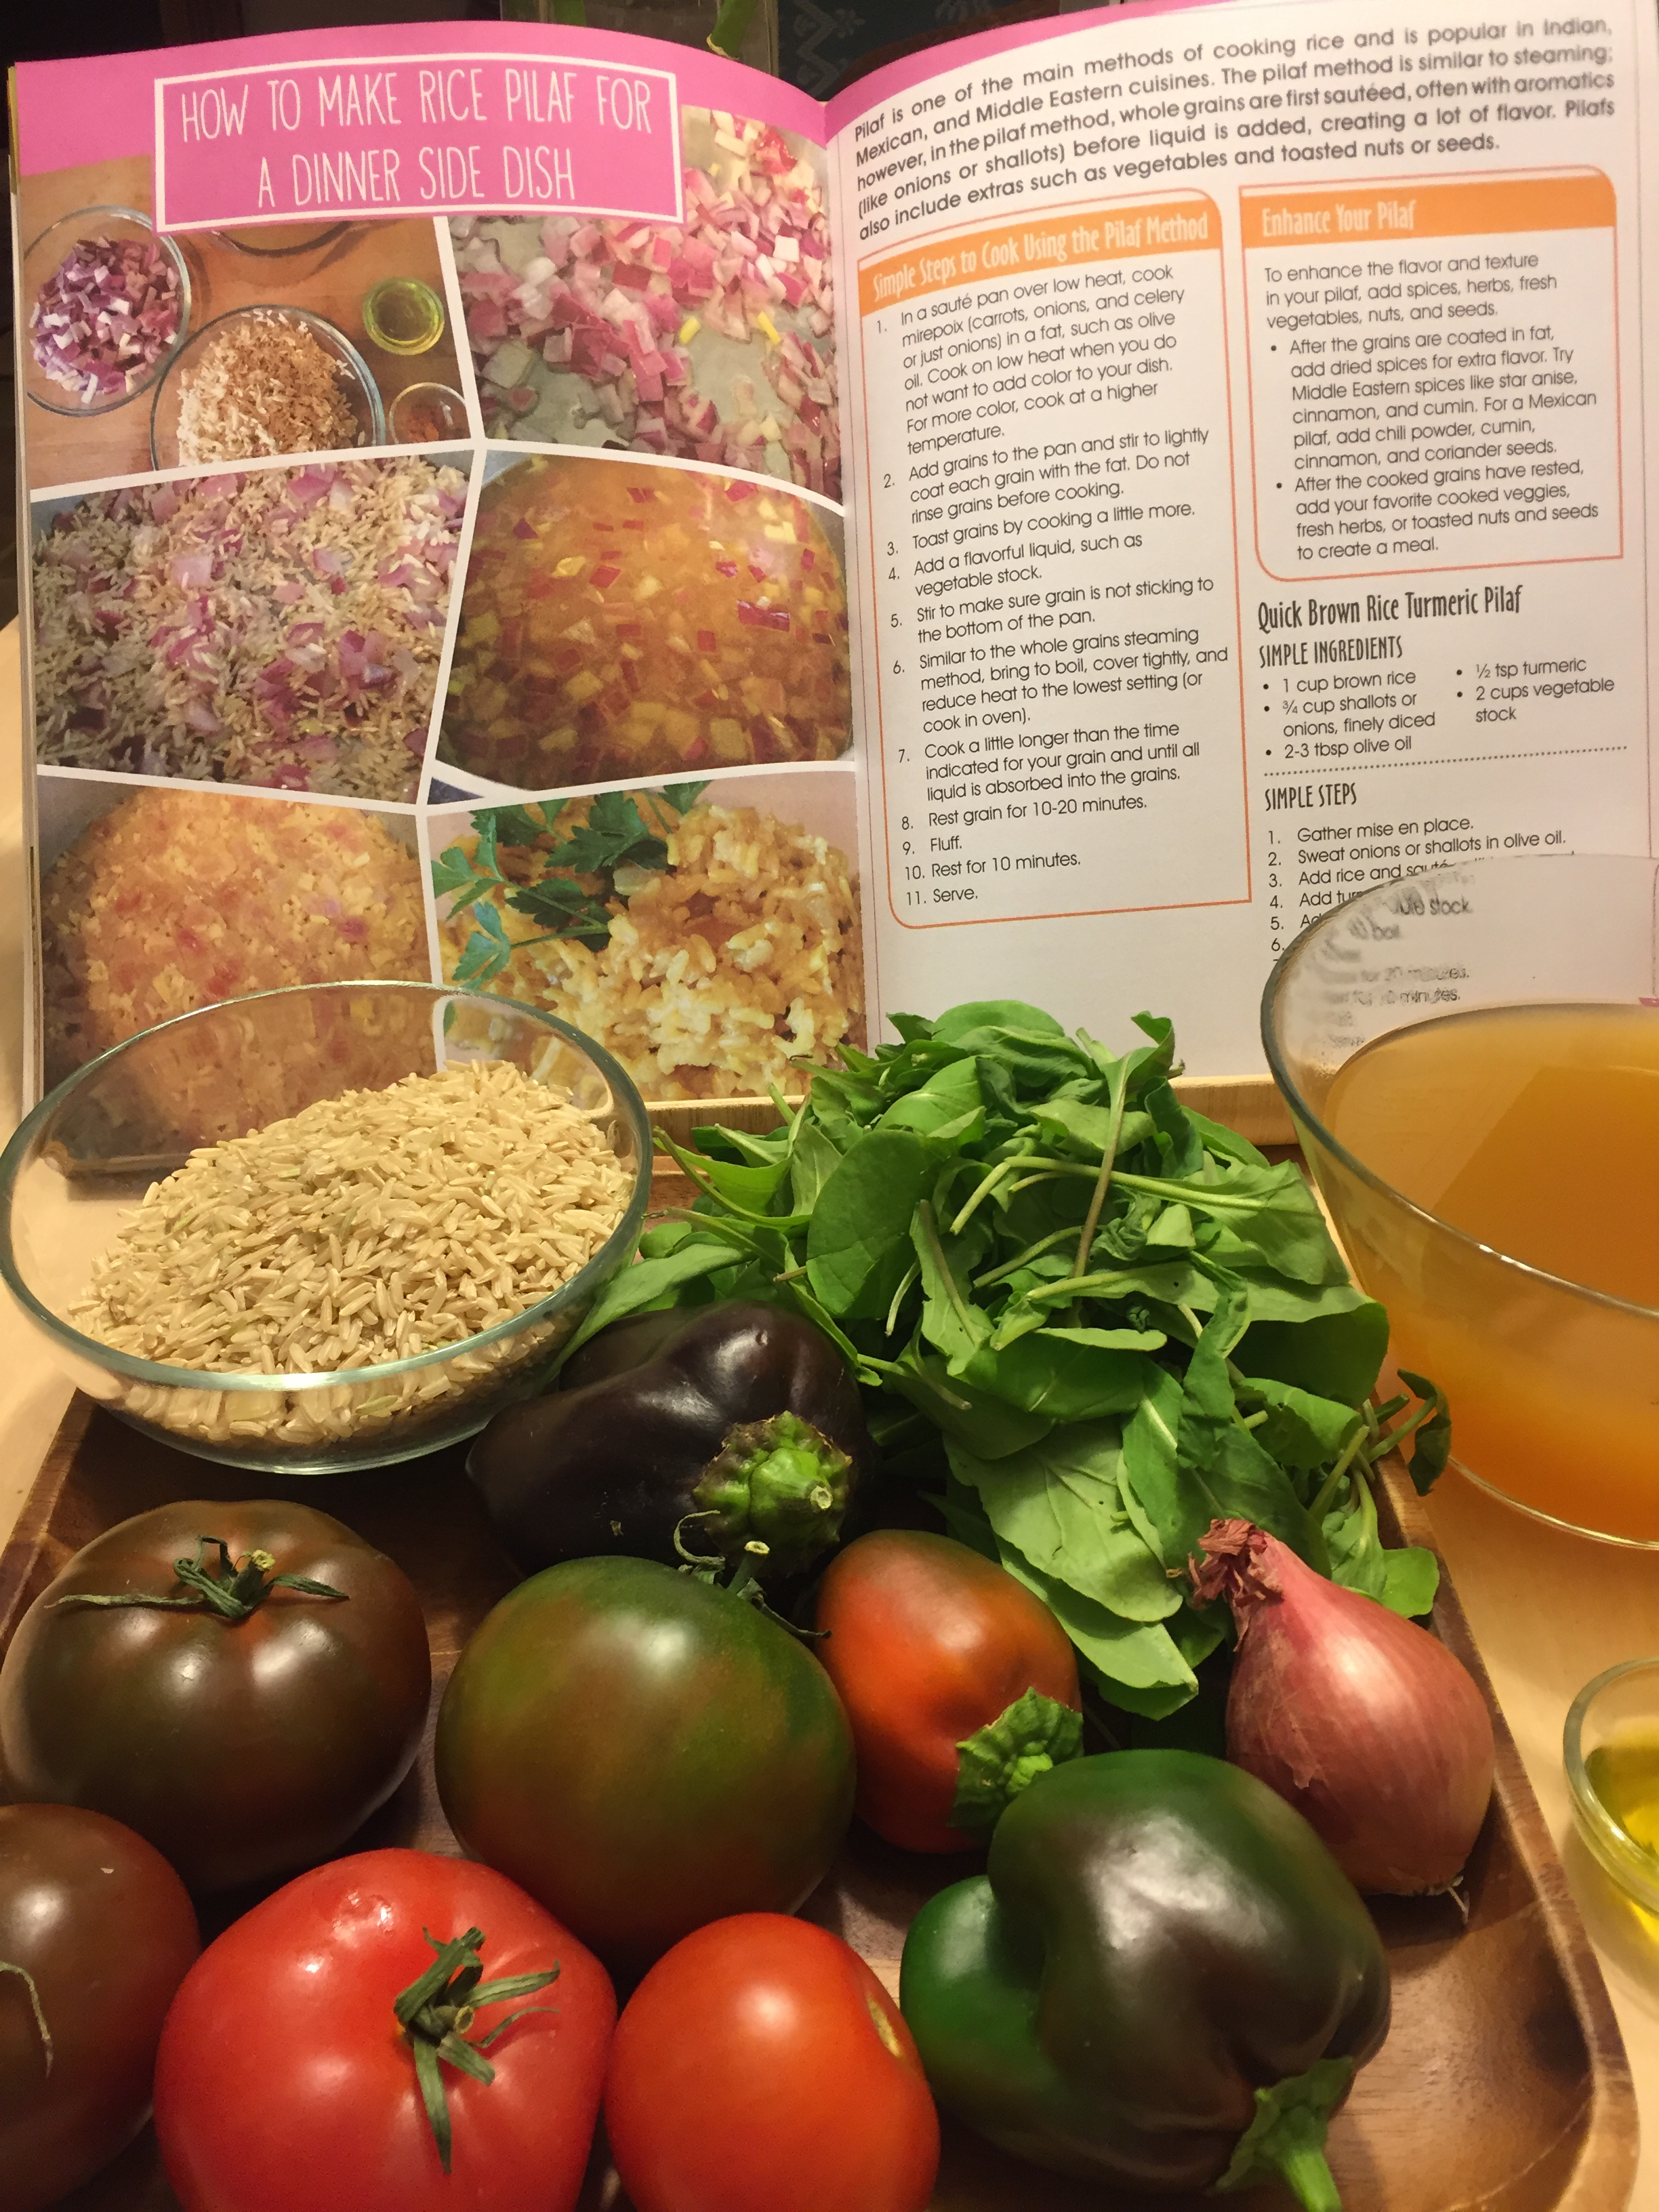 A New View Of Healthy Eating: Simple Steps To Make An Incredible Rice Pilaf  €�